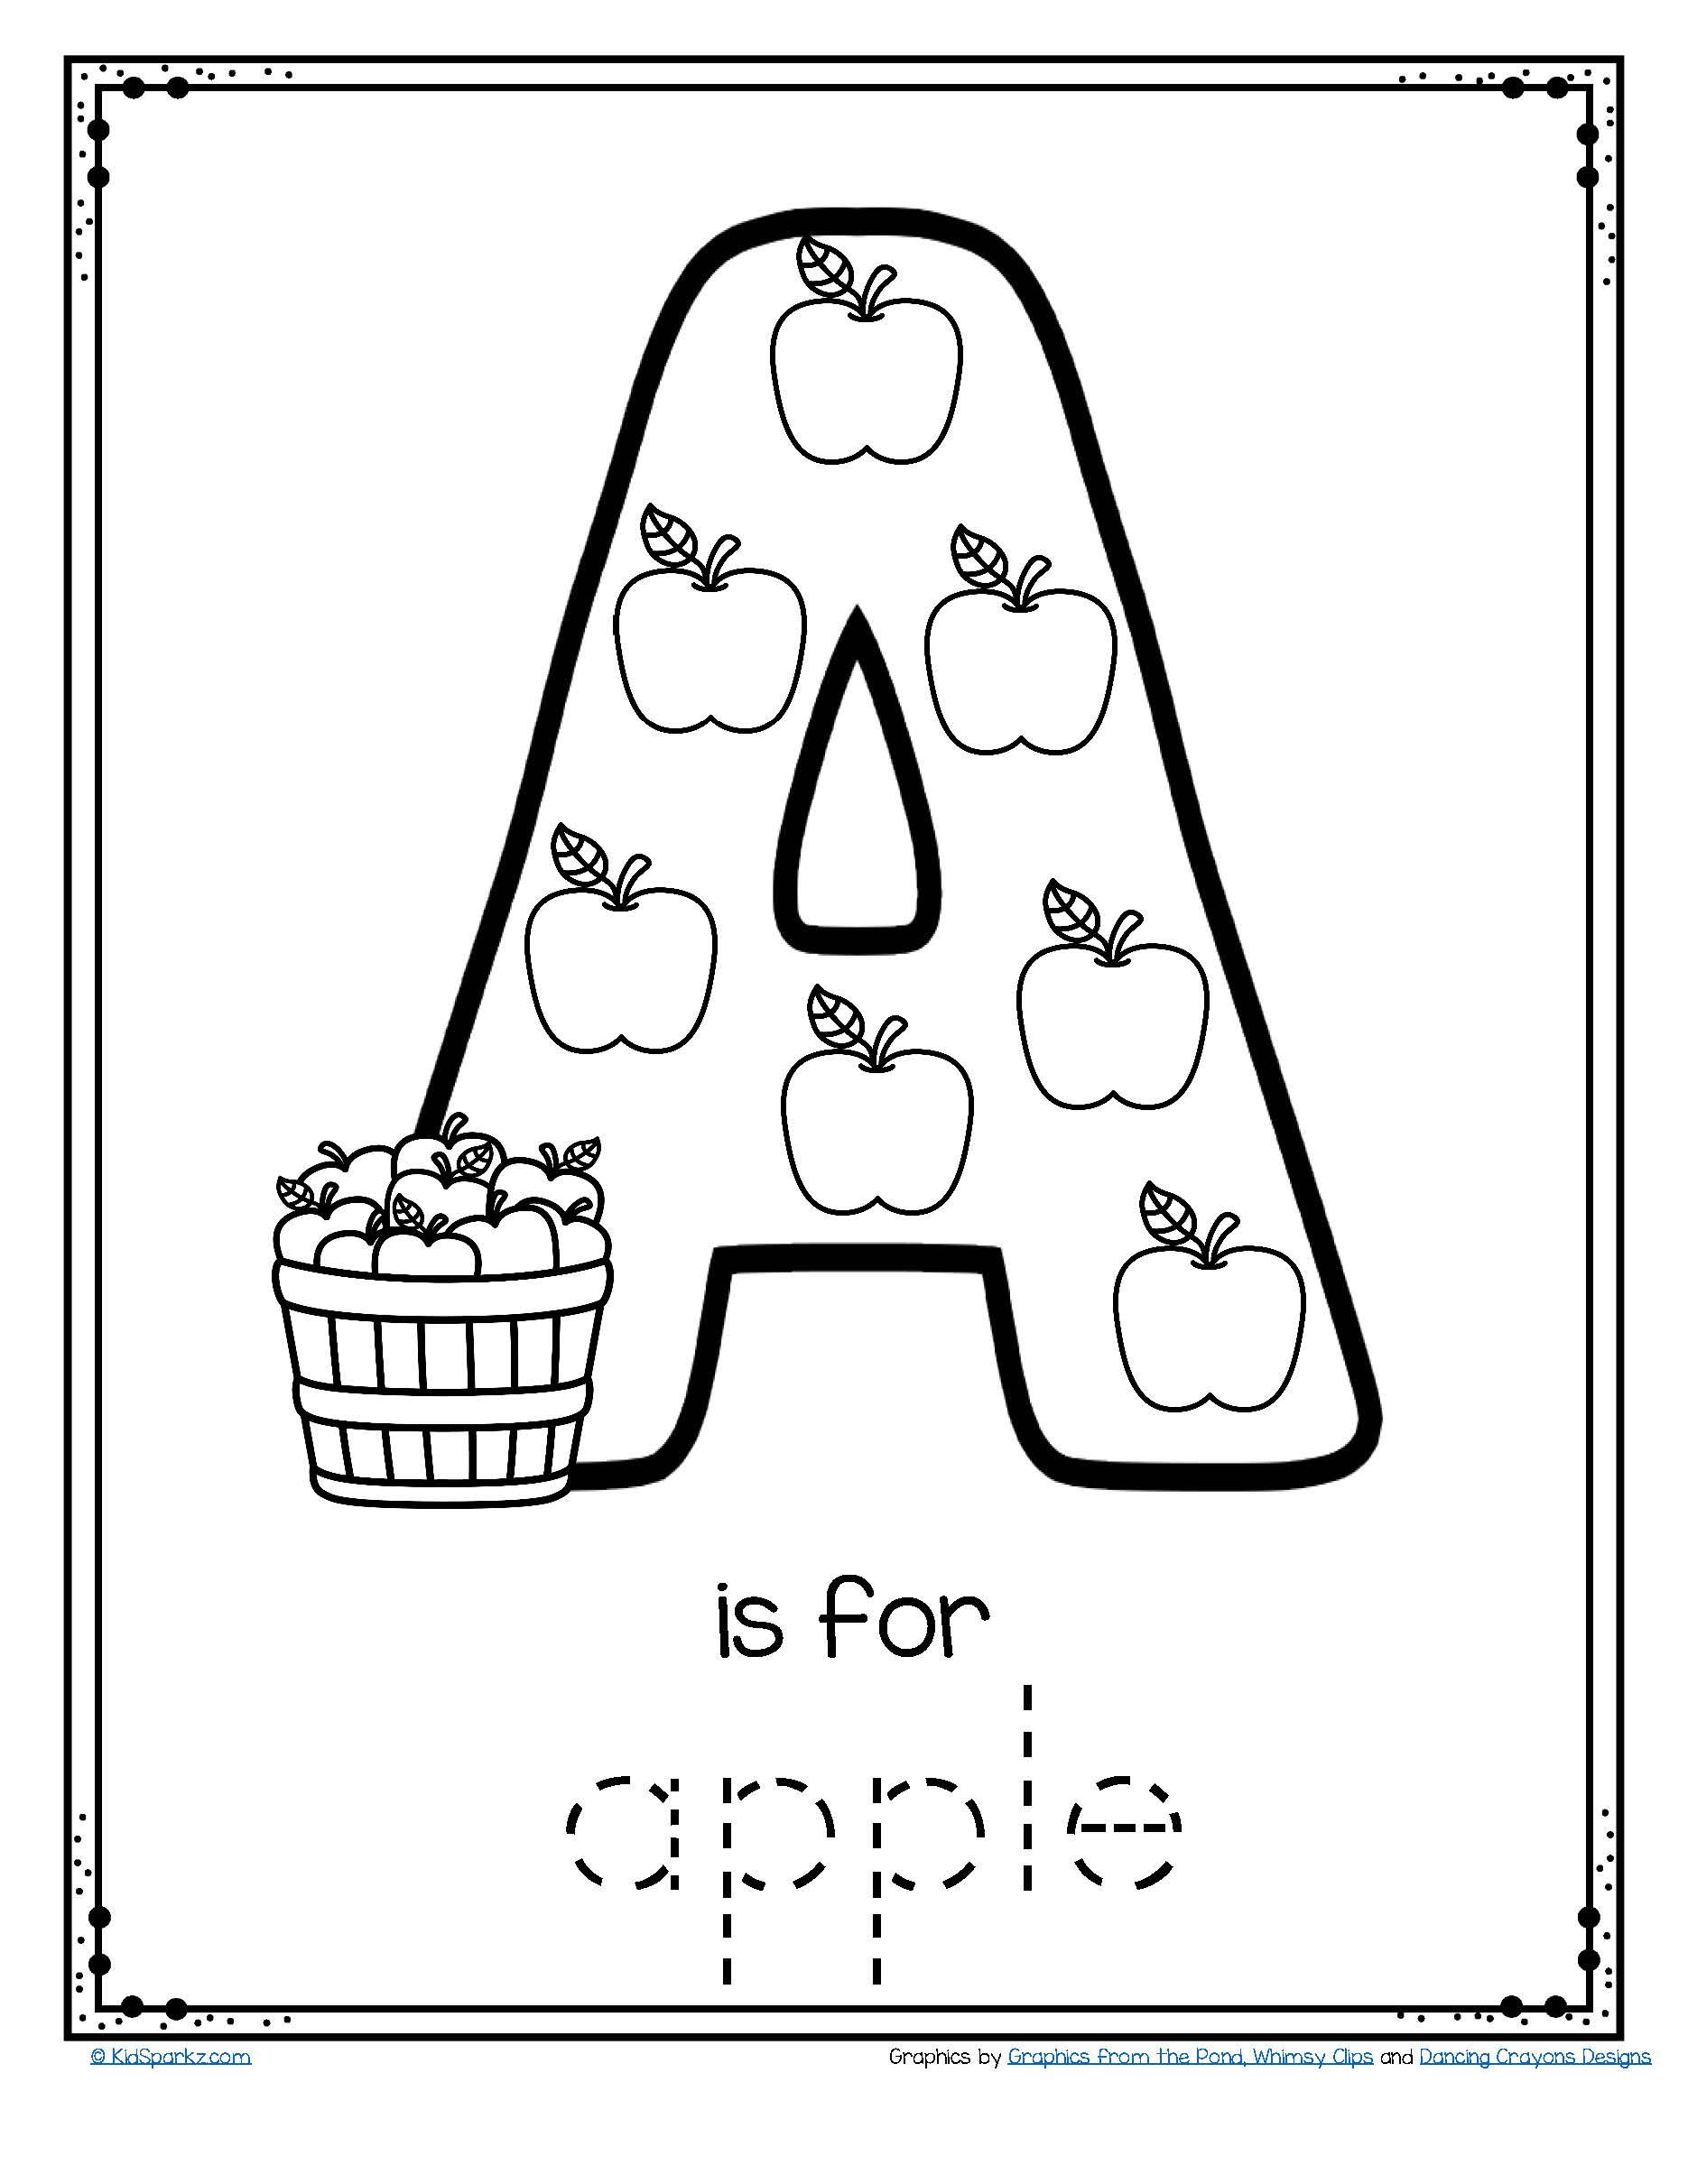 Free A Is For Apple Alphabet Trace And Color Printable Alphabet Preschool Alphabet Printables Alphabet Activities Preschool Letter Worksheets For Preschool